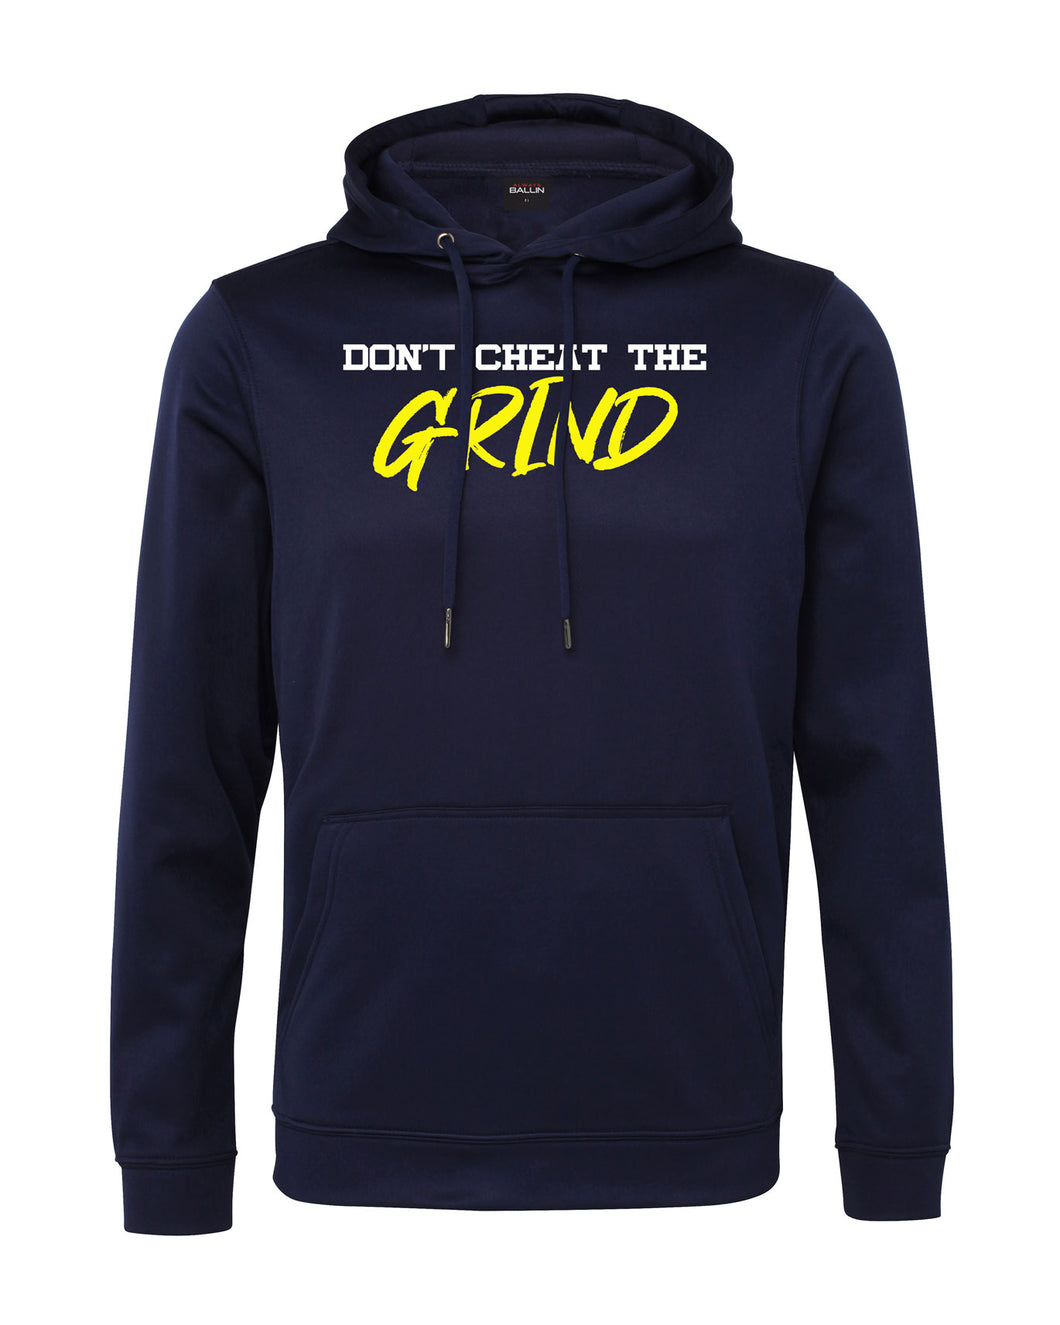 Don't Cheat The Grind V4 Performance Navy Blue Hoodie